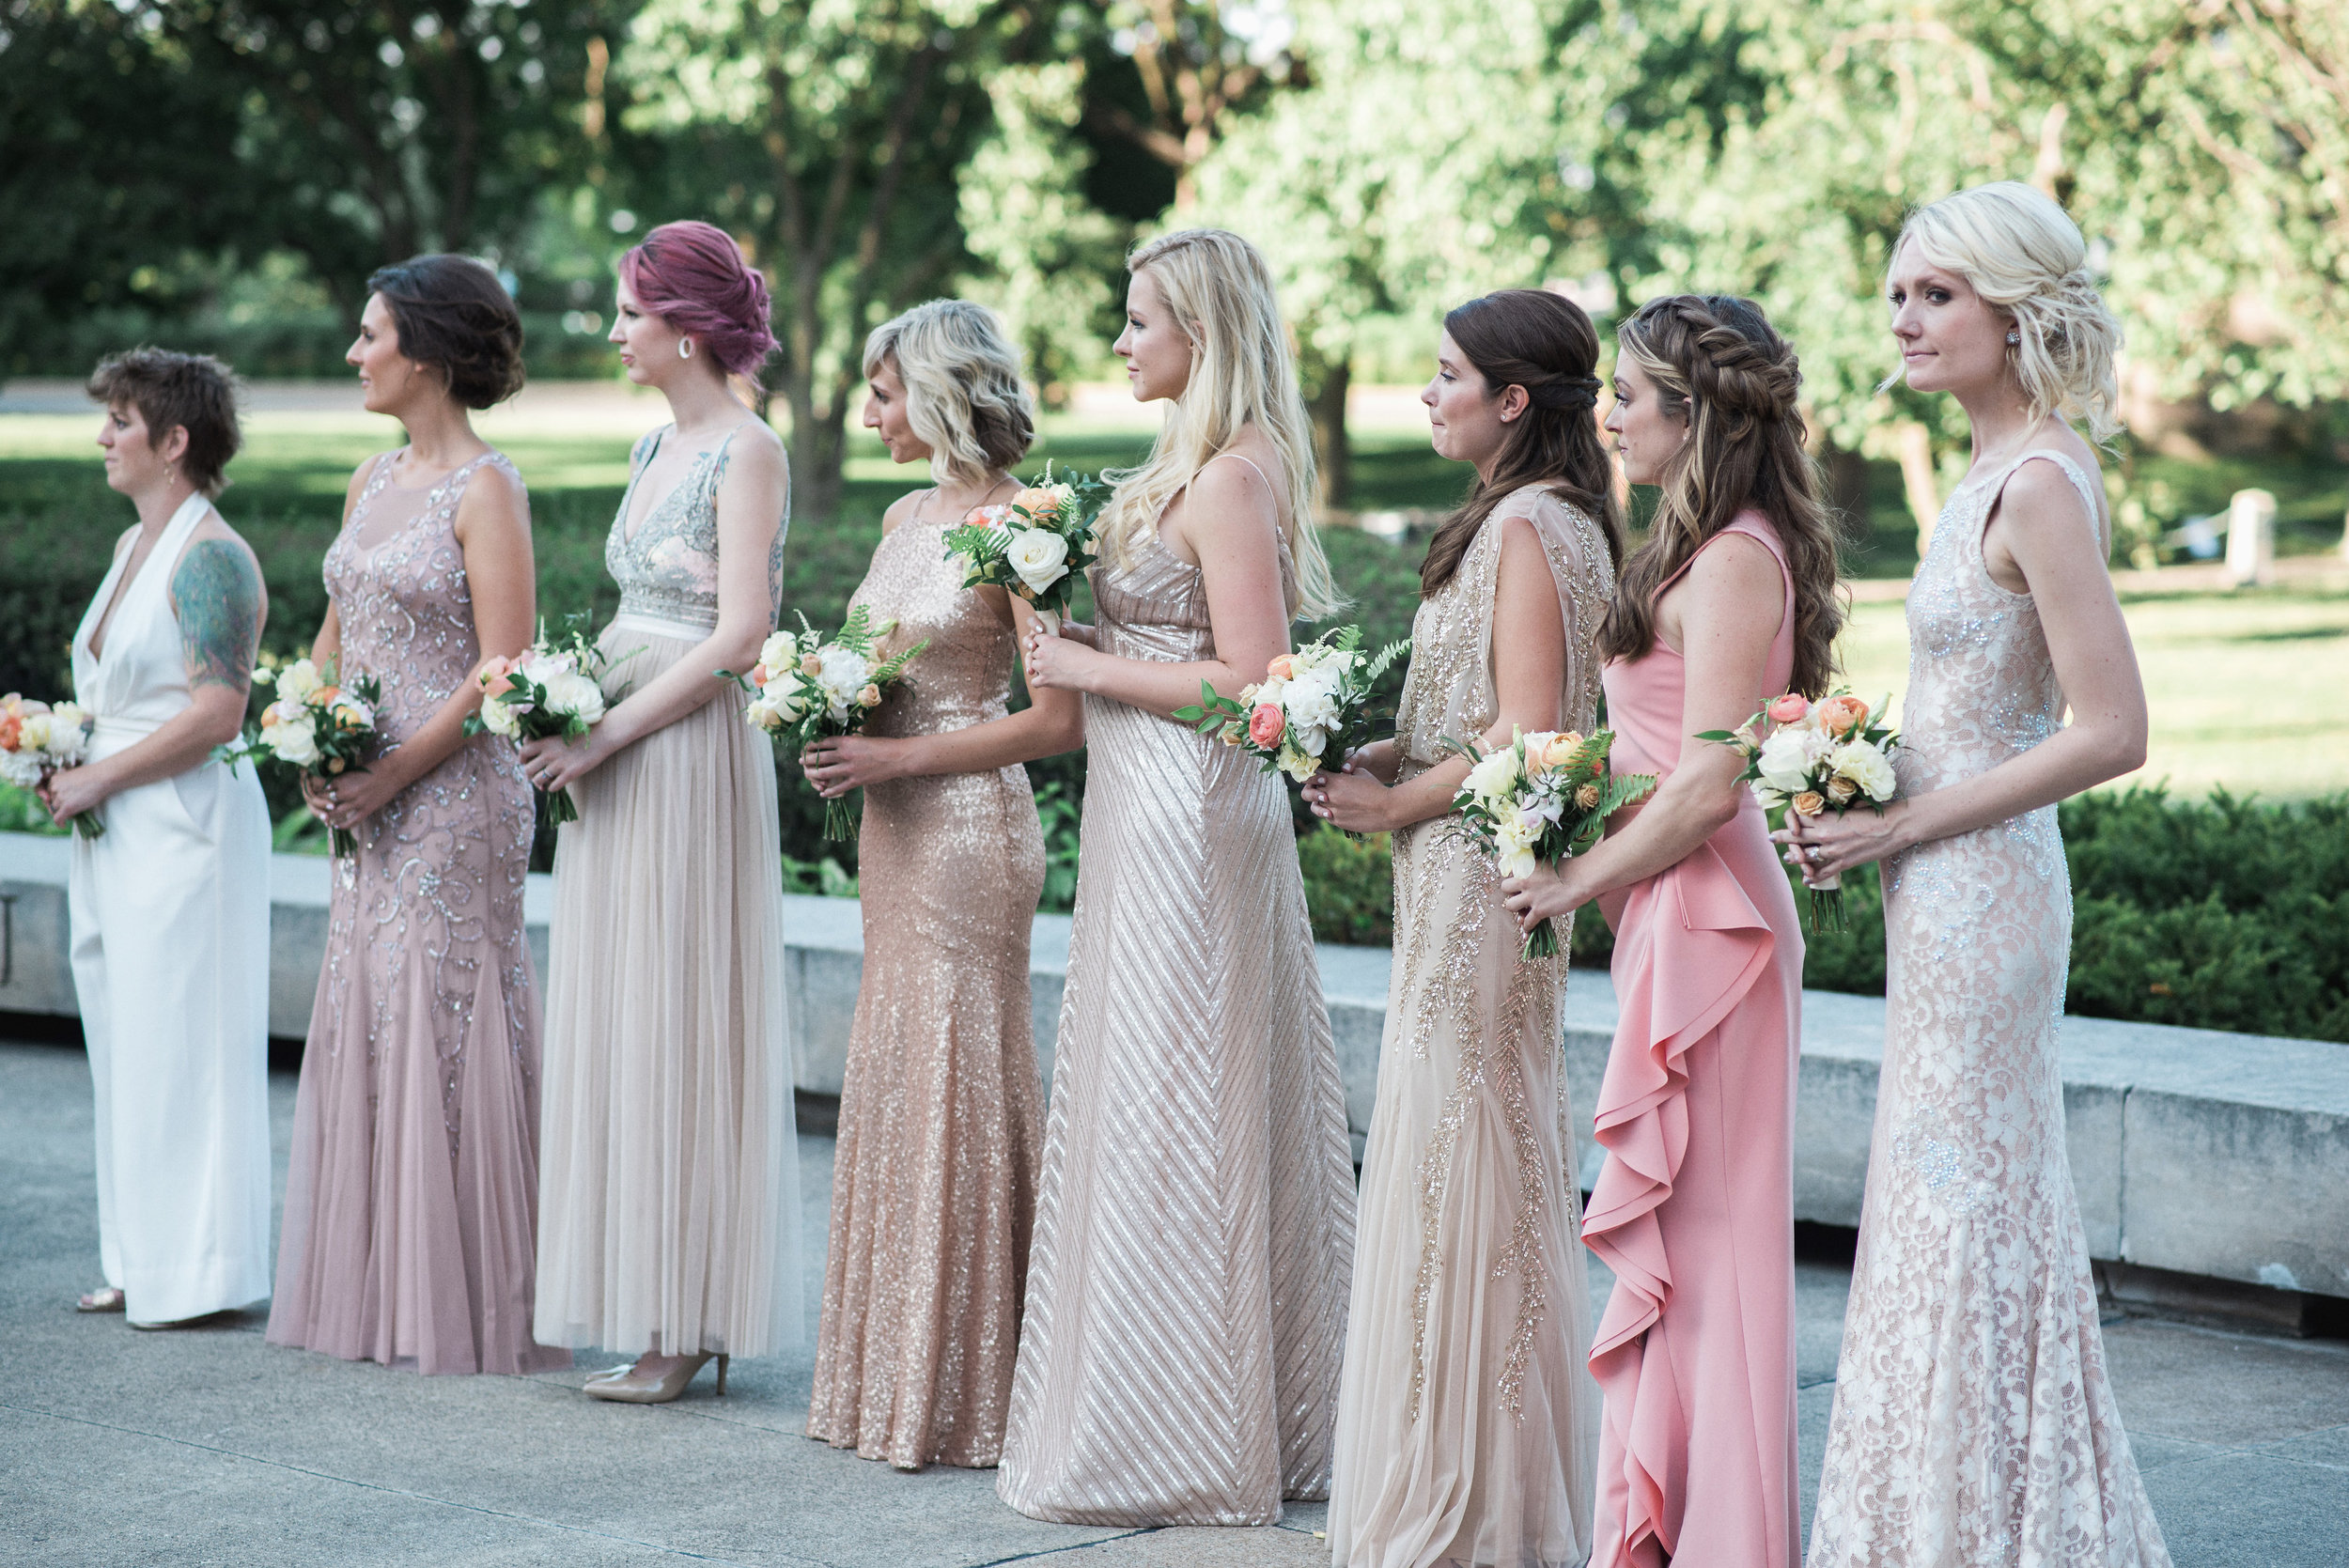 Floral by Fleur Inc, photo by Jody Savage Photography, planning by LK Events